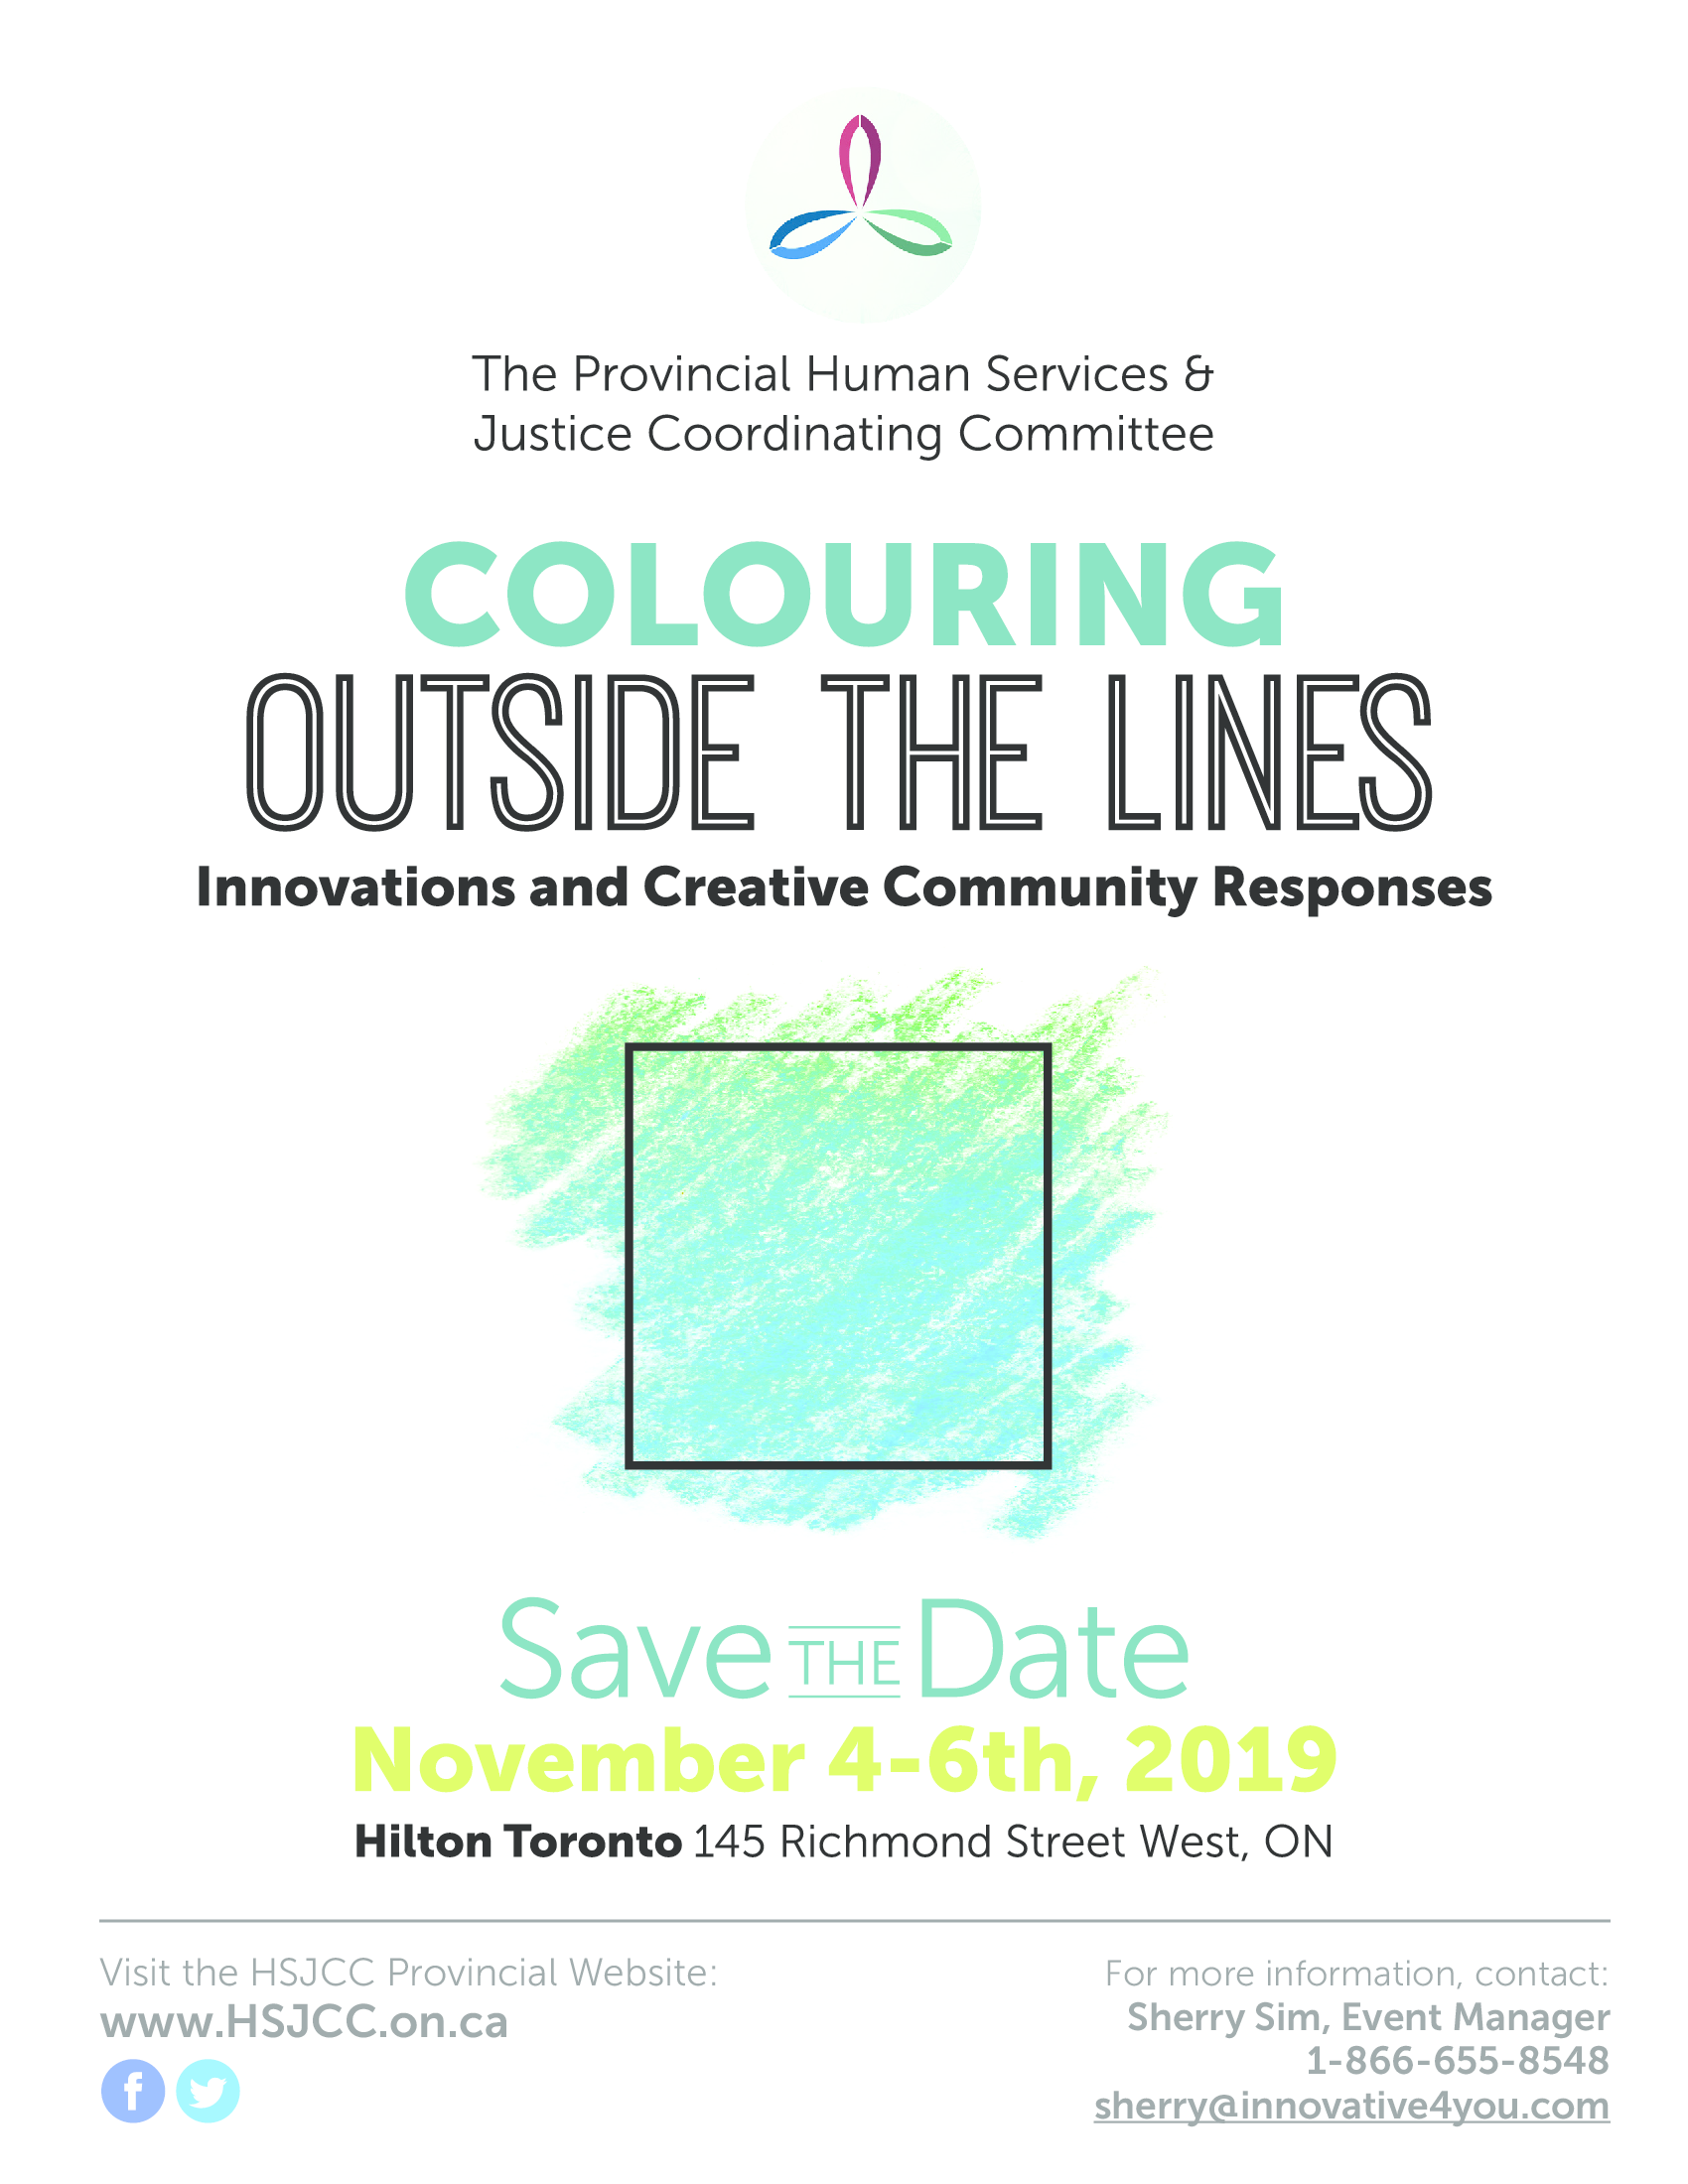 Save the Date - November 4-6, 2019